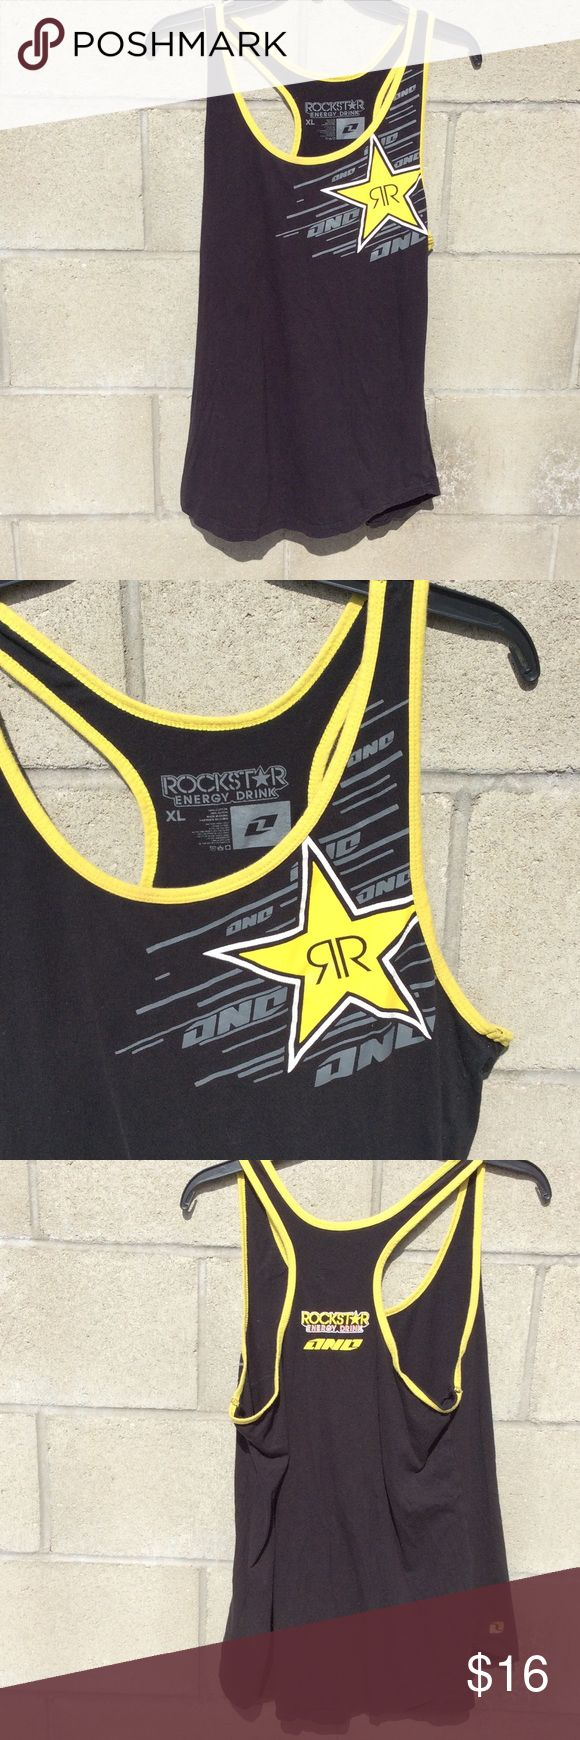 Rockstar energy drink tank top Black sleeveless racerback tank top shirt to with yellow outline with rockstar energy drink brand logo. Rockstar Energy Drink Tops Tank Tops